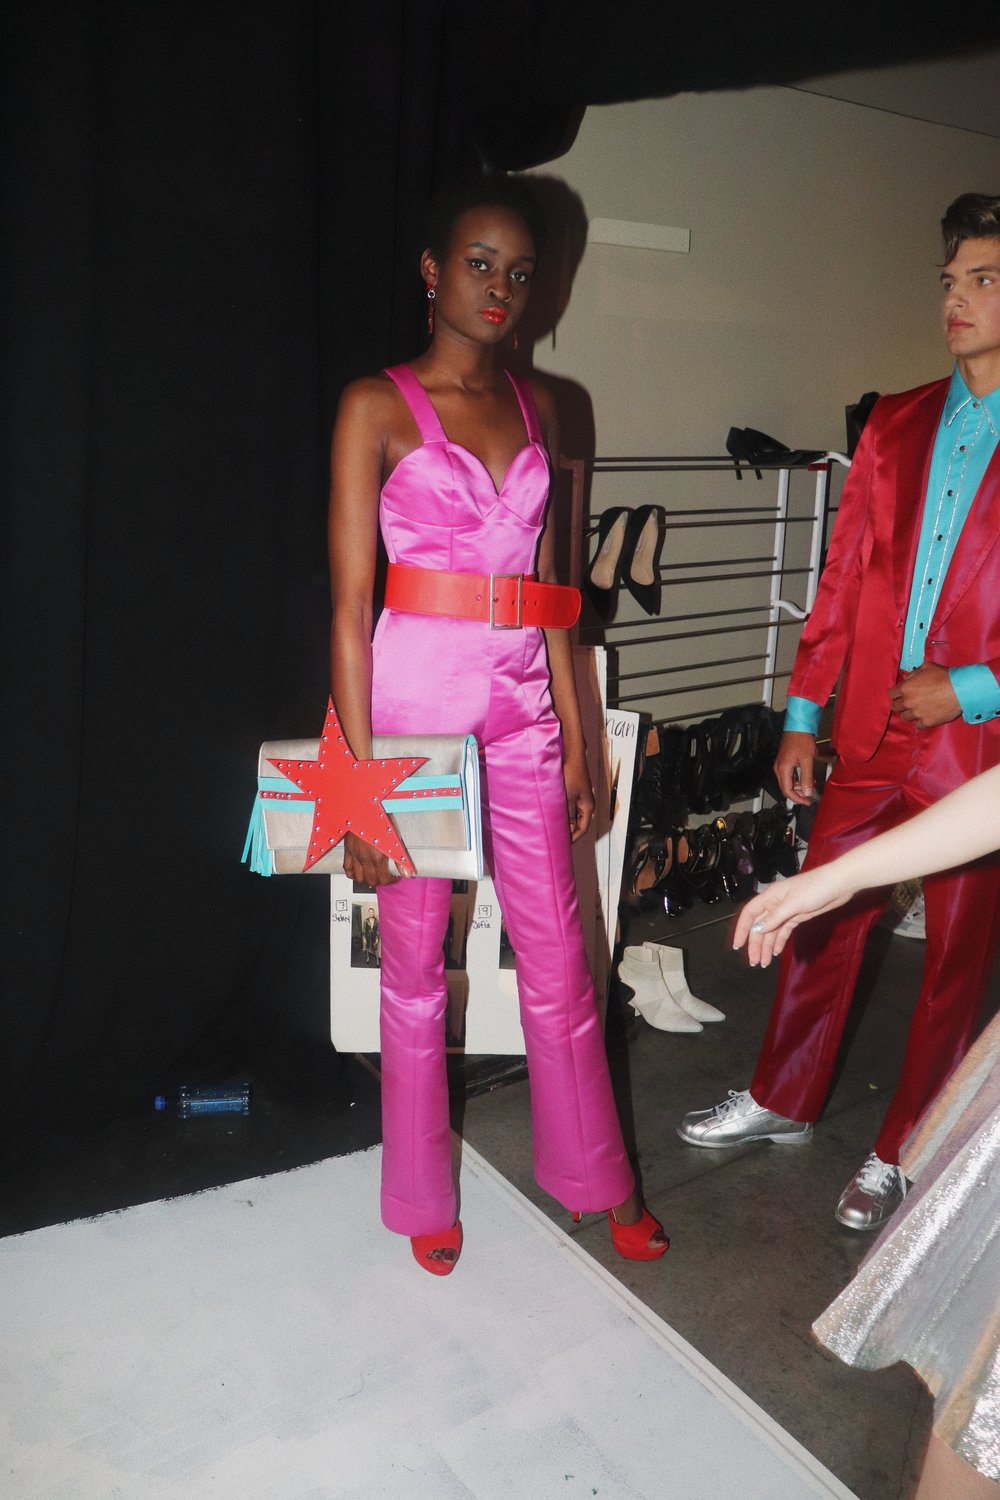 4-NFW2018-NIGHT4-EKELLY_BYJOULE7TEEN_004.JPG